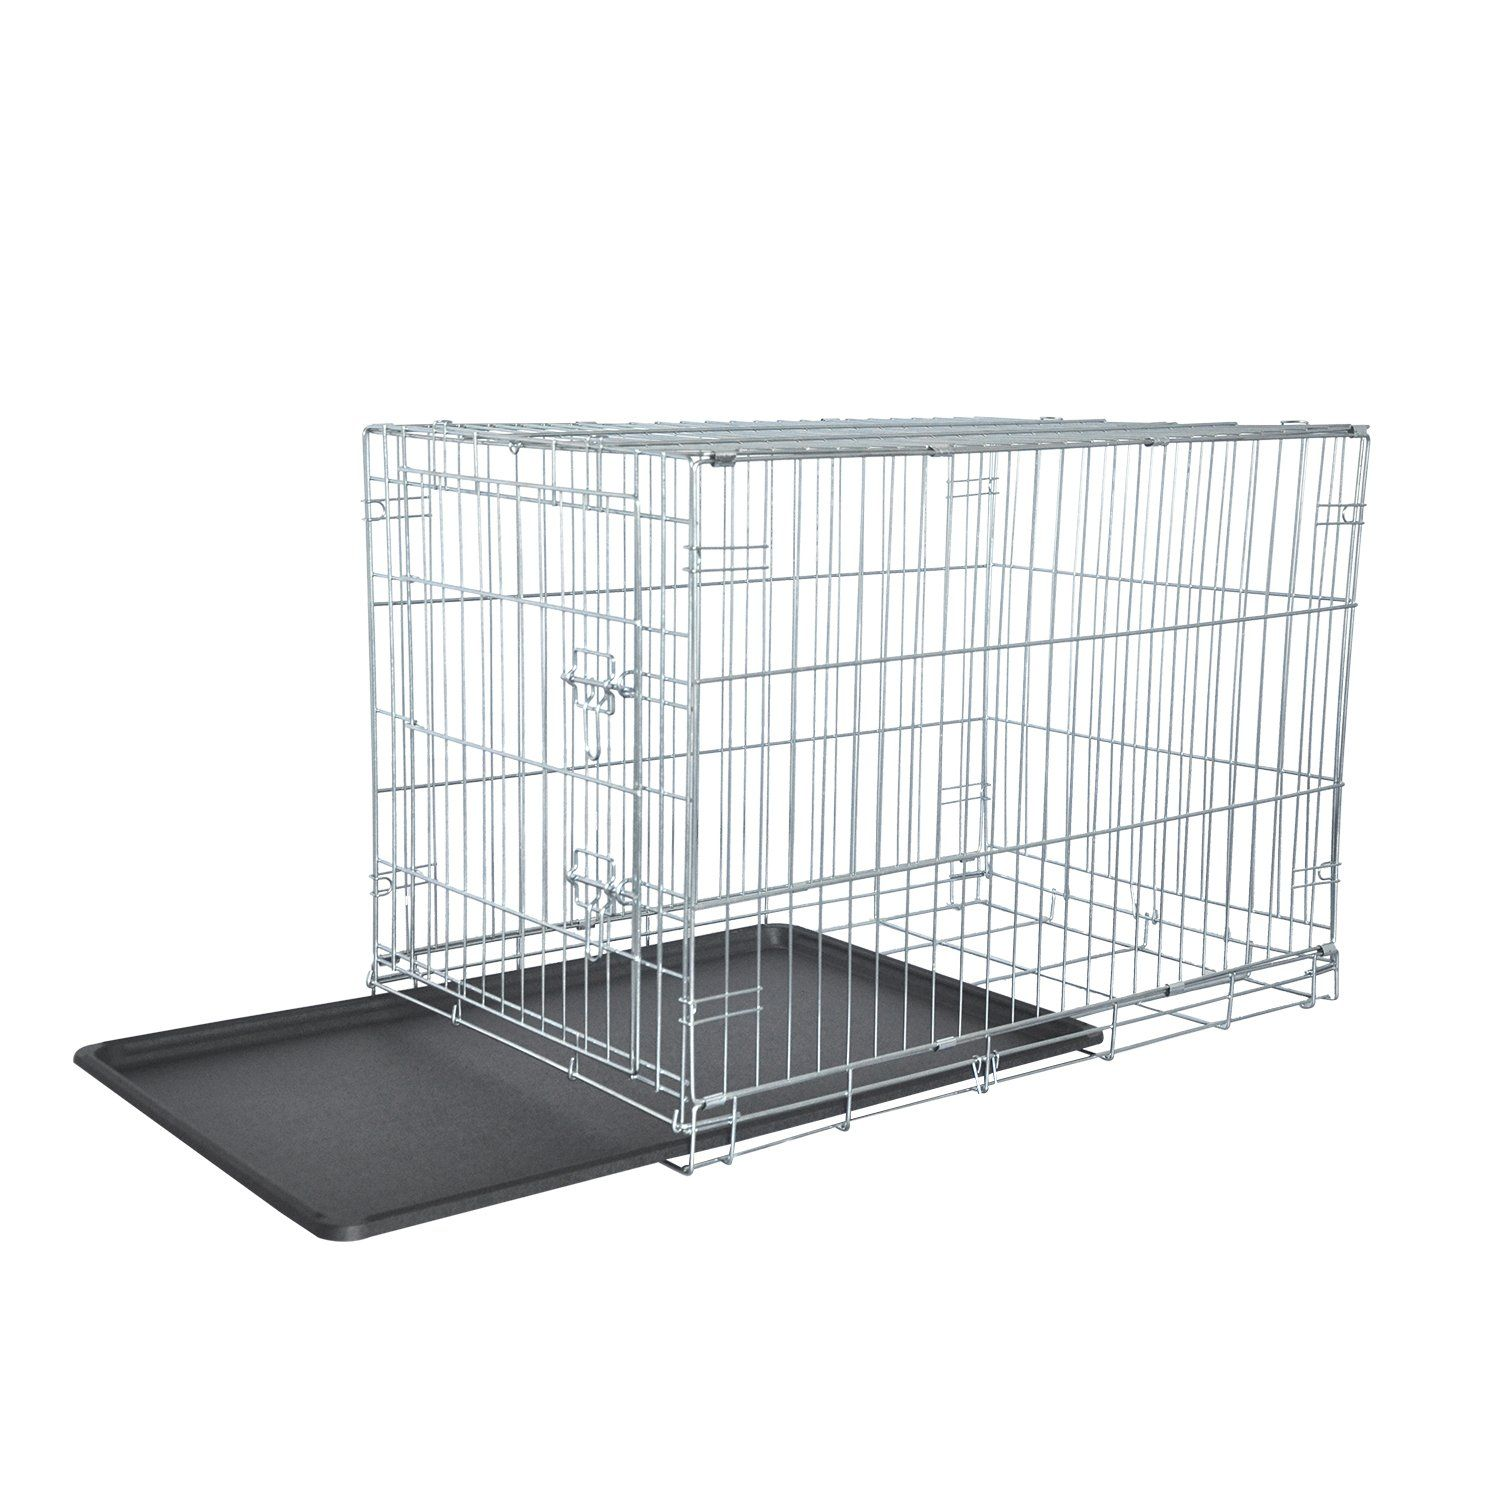 Lemka Dog Crate Single Door Galvanized Never Paint Off Floor Protecting Feet Andleak Proof Dog Tray Compact An Folding Dog Crate Portable Dog Crate Dog Crate